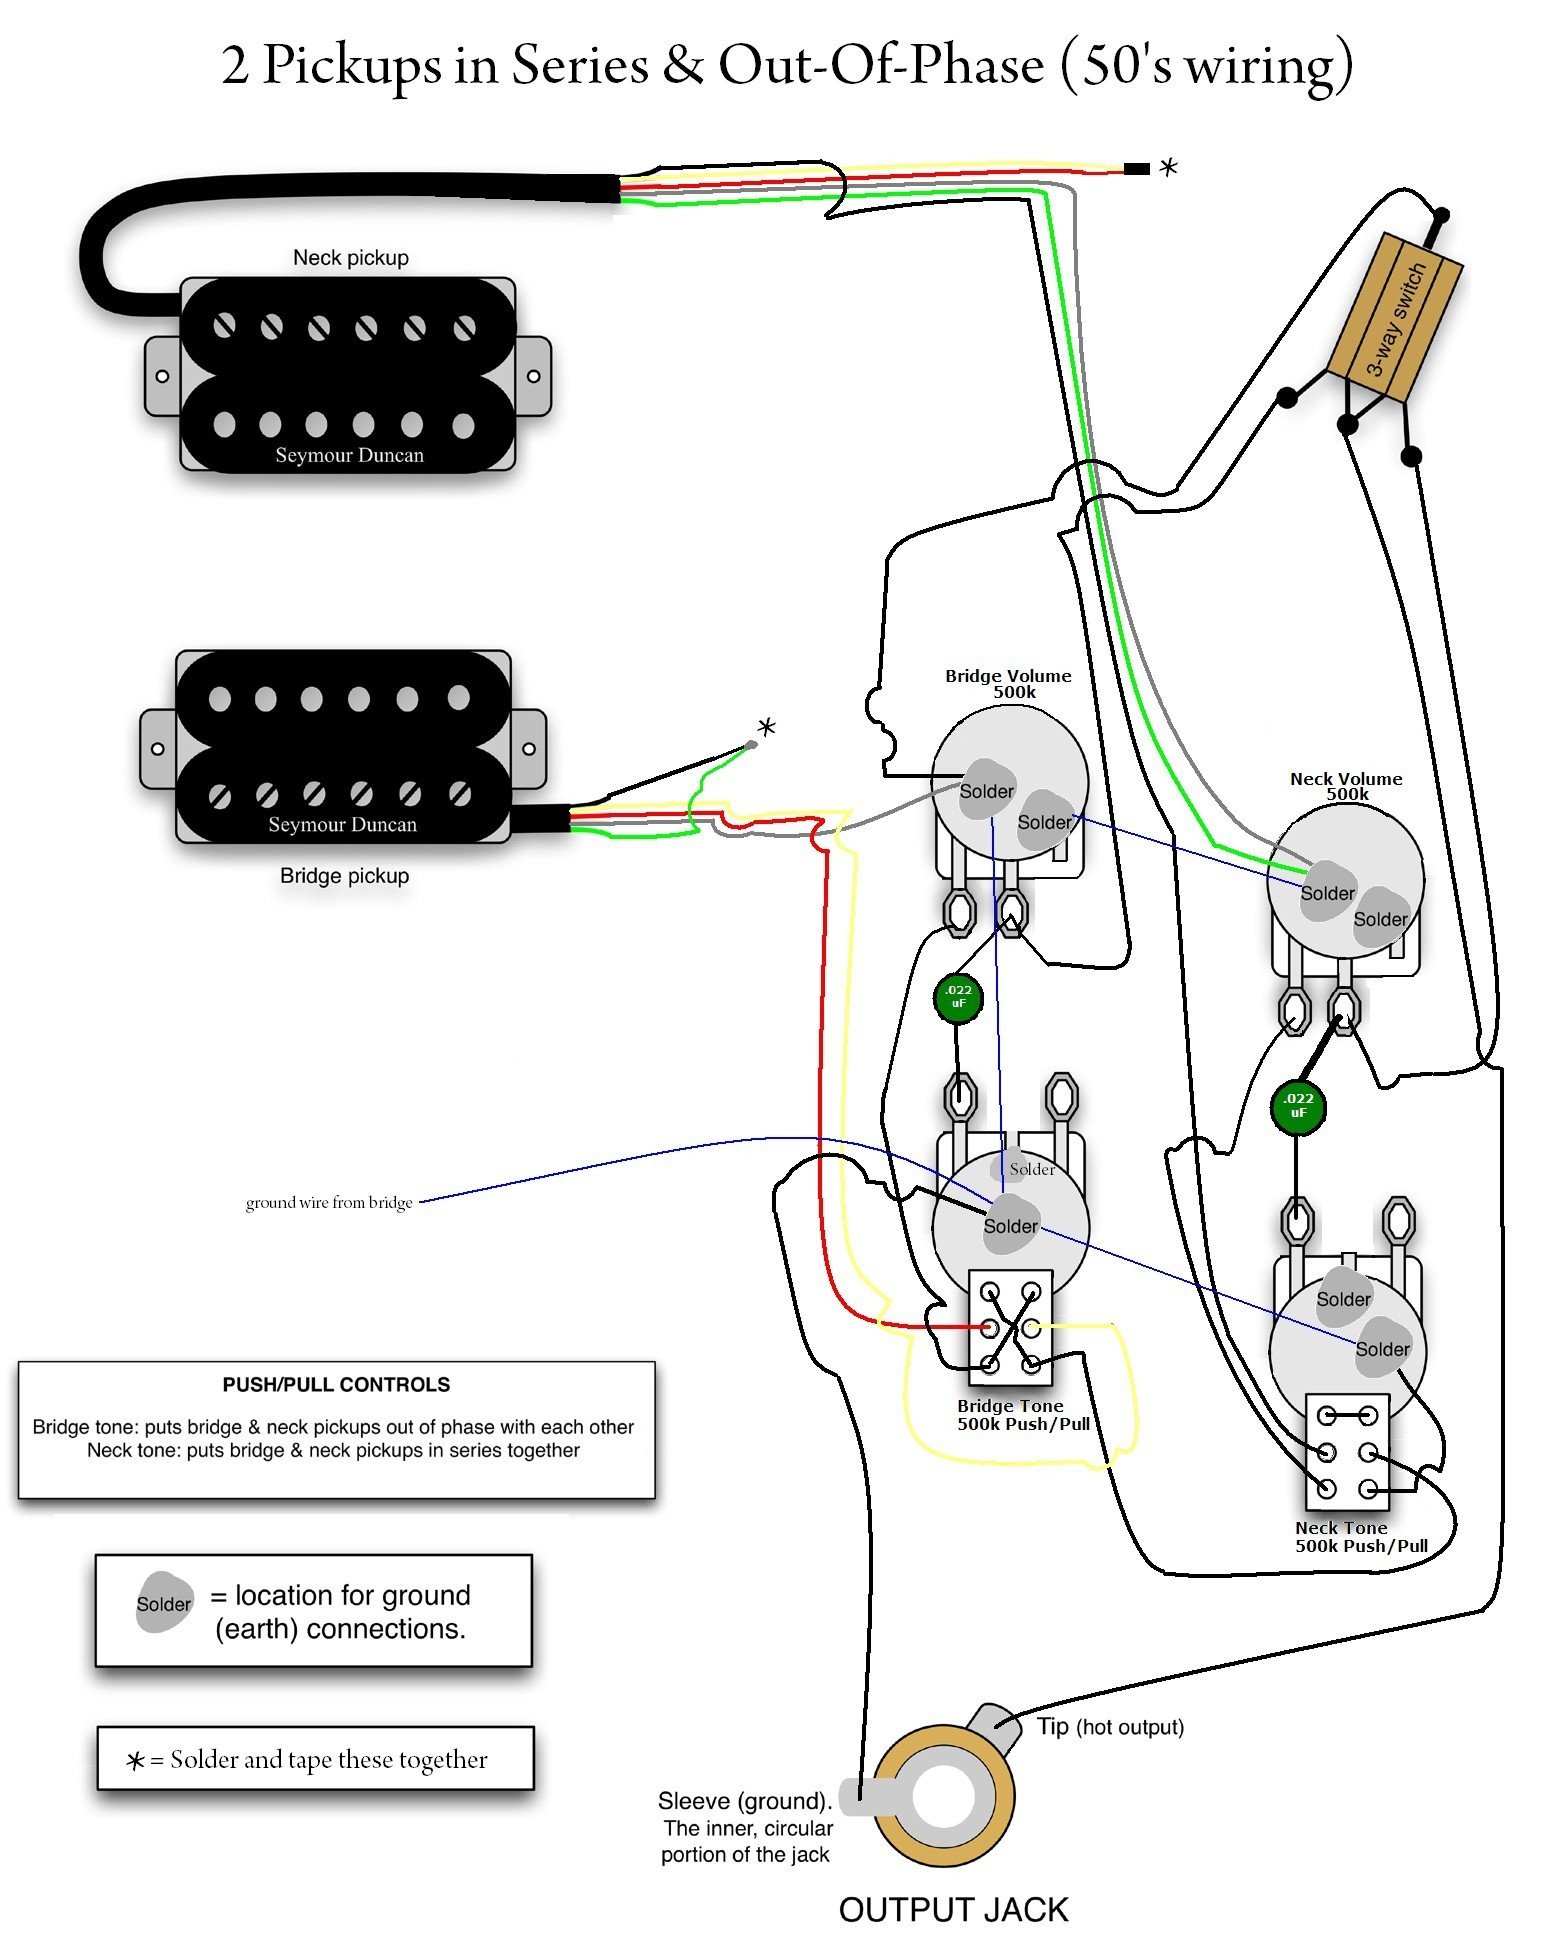 Push Pull Wiring Diagram For Epiphone Les Paul   Wiring Diagram Push Pull Wiring Diagram For Epiphone Les Paul on wiring diagram for epiphone g-400, wiring diagram for epiphone dot, schematic for epiphone les paul, wiring diagram for epiphone sg special, wiring a les paul standard,